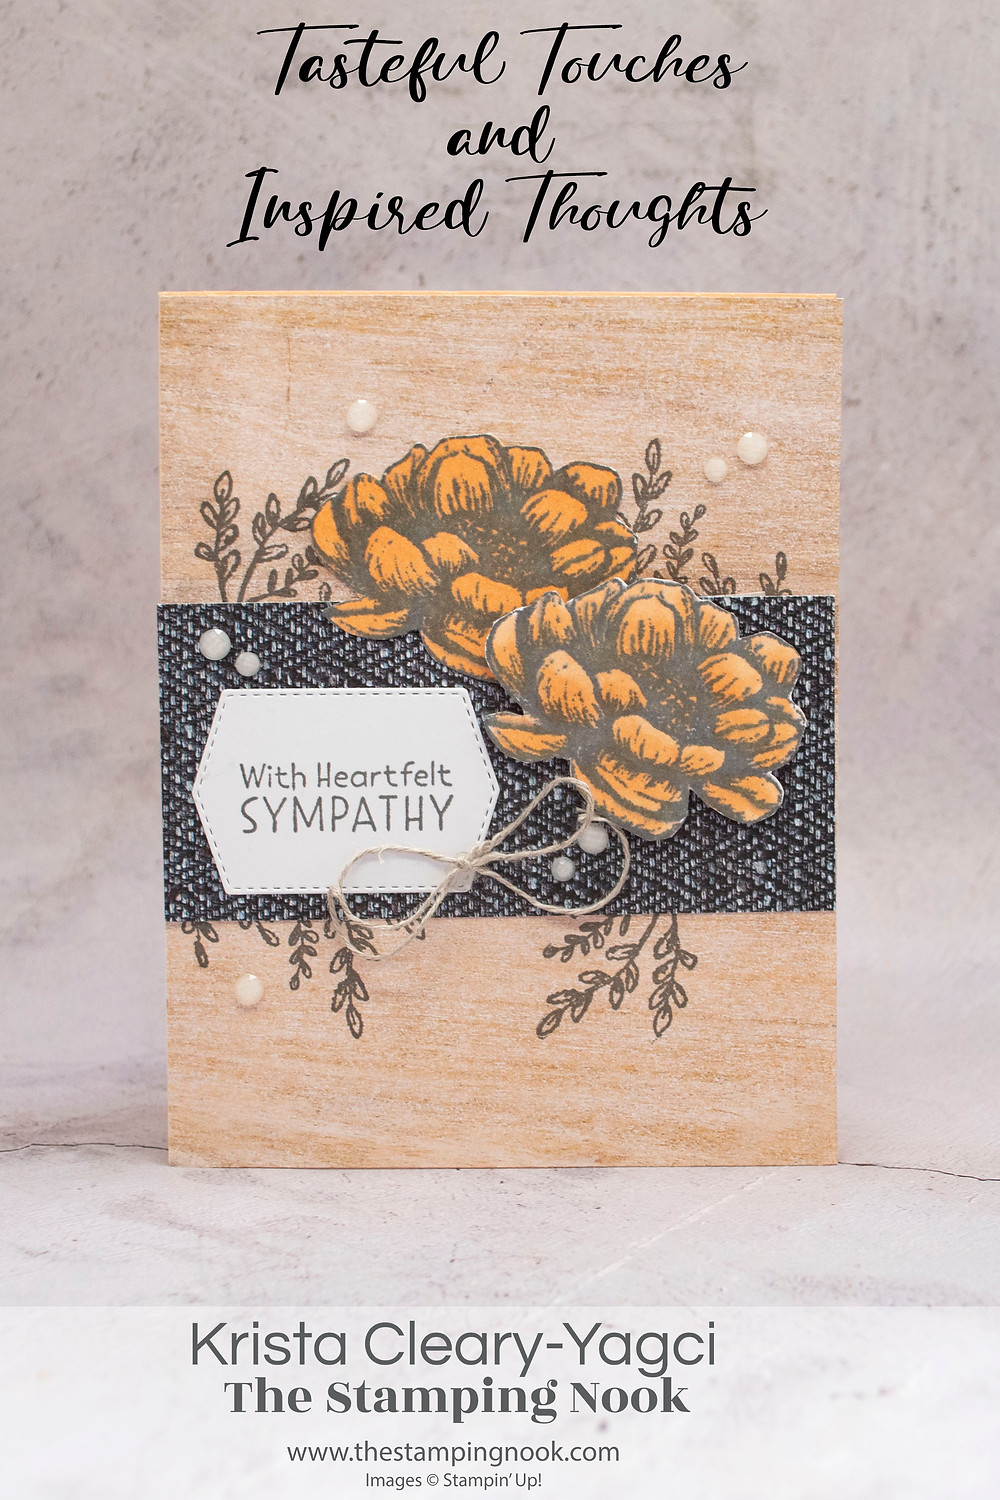 Stampin' Up! Card Ideas - Stampin Up Card Ideas - Tasteful Touches Stamp Set - Tasteful Touches Card Ideas - Tasteful Touches Stampin Up - Stampin Up Tasteful Touches  - Stampin Up Cards  - Tasteful Touches Stamp Set - Tasteful Touches Card Ideas - Tasteful Touches Stampin Up - Stampin Up Tasteful Touches - Stampin' Up! Card Ideas - Inspired Thoughts Card Ideas - Inspired Thoughts Stamp Set - Inspired Thoughts Card Ideas - Inspired Thoughts Stampin Up - Stampin Up Inspired Thoughts  - Stampin Up Cards  - Inspired Thoughts Stamp Set - Inspired Thoughts Card Ideas - Inspired Thoughts Stampin Up - Stampin Up Tasteful Touches - The Stamping Nook - Krista Cleary-Yagci - Stampin' Up! Demonstrator - Stampin Up Pennsylvania - Stampin Up New Jersey